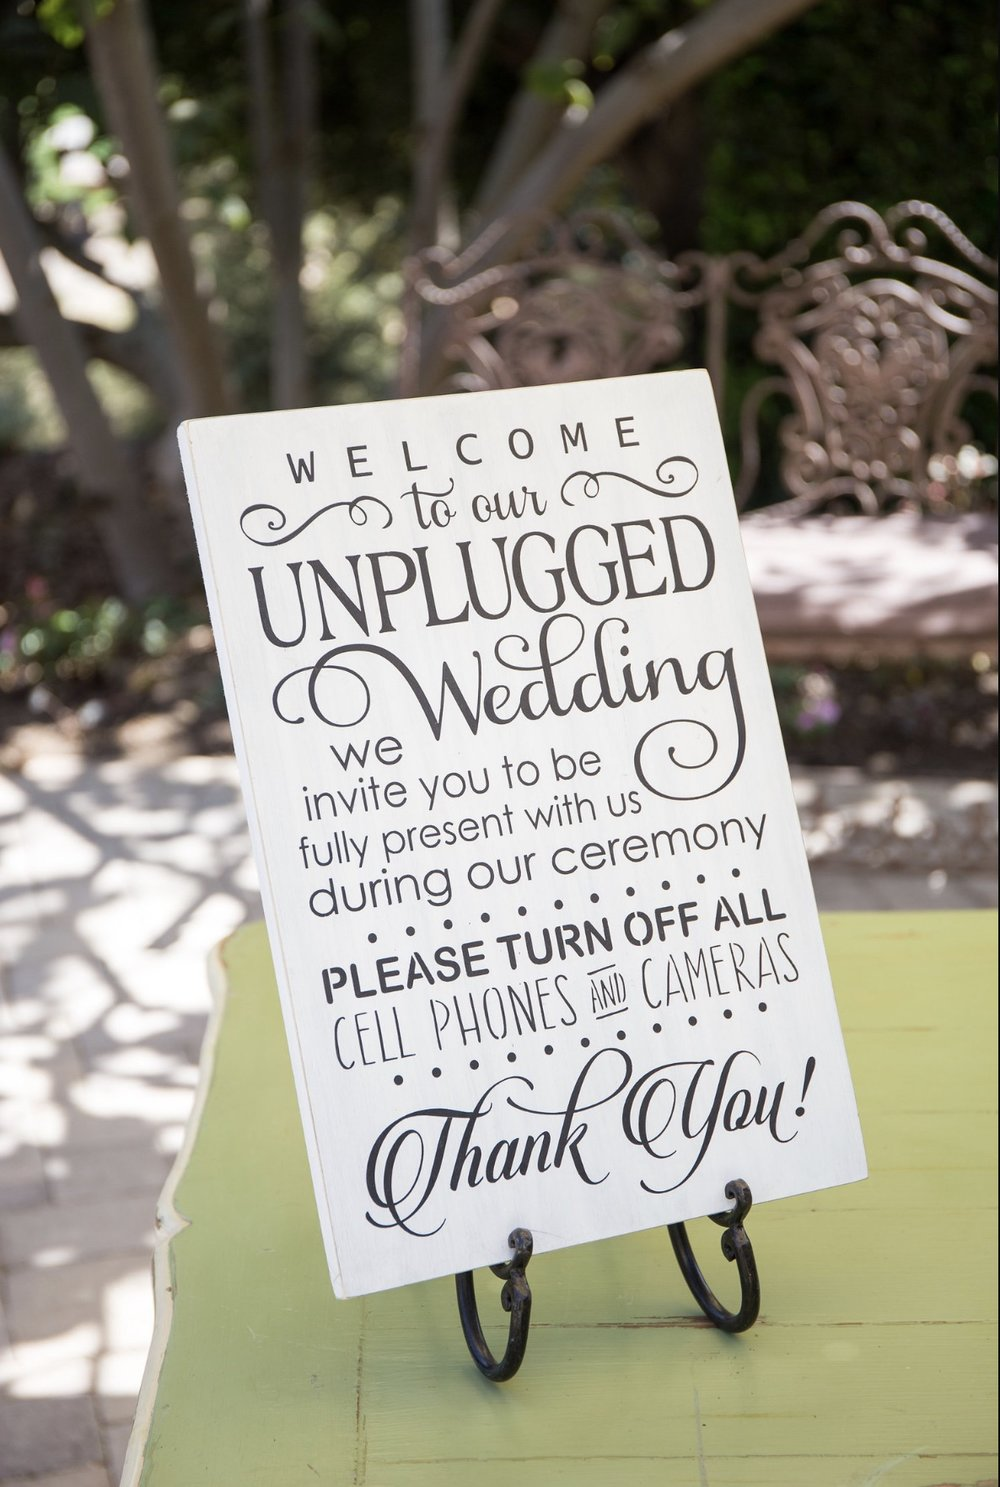 UNPLUGGED WEDDING SIGN WITH STAND - $15